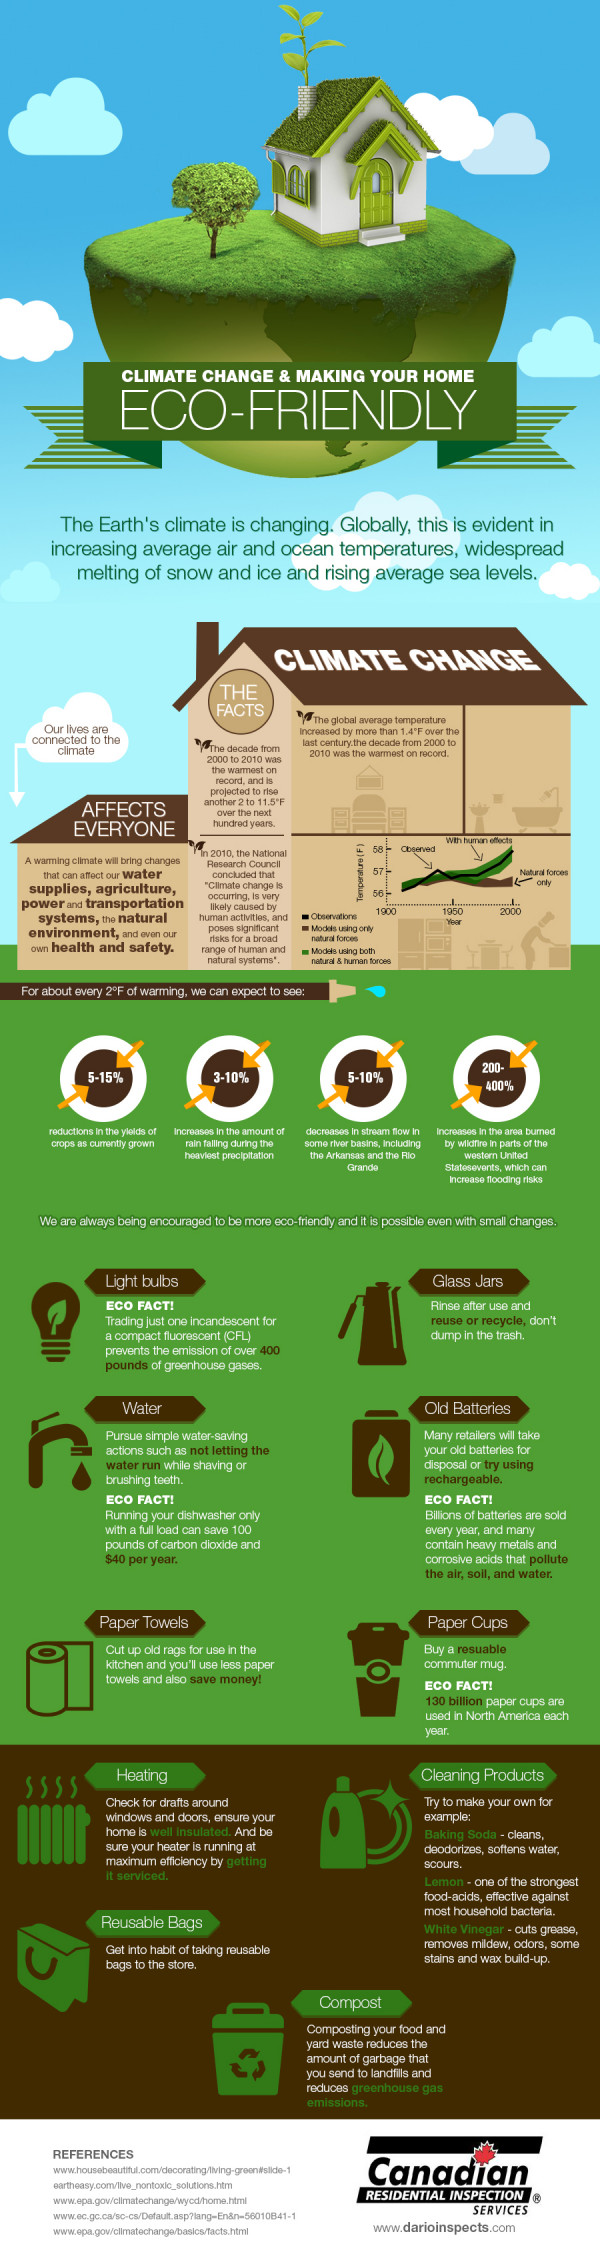 Climate Change â Can We Help? An Infographic